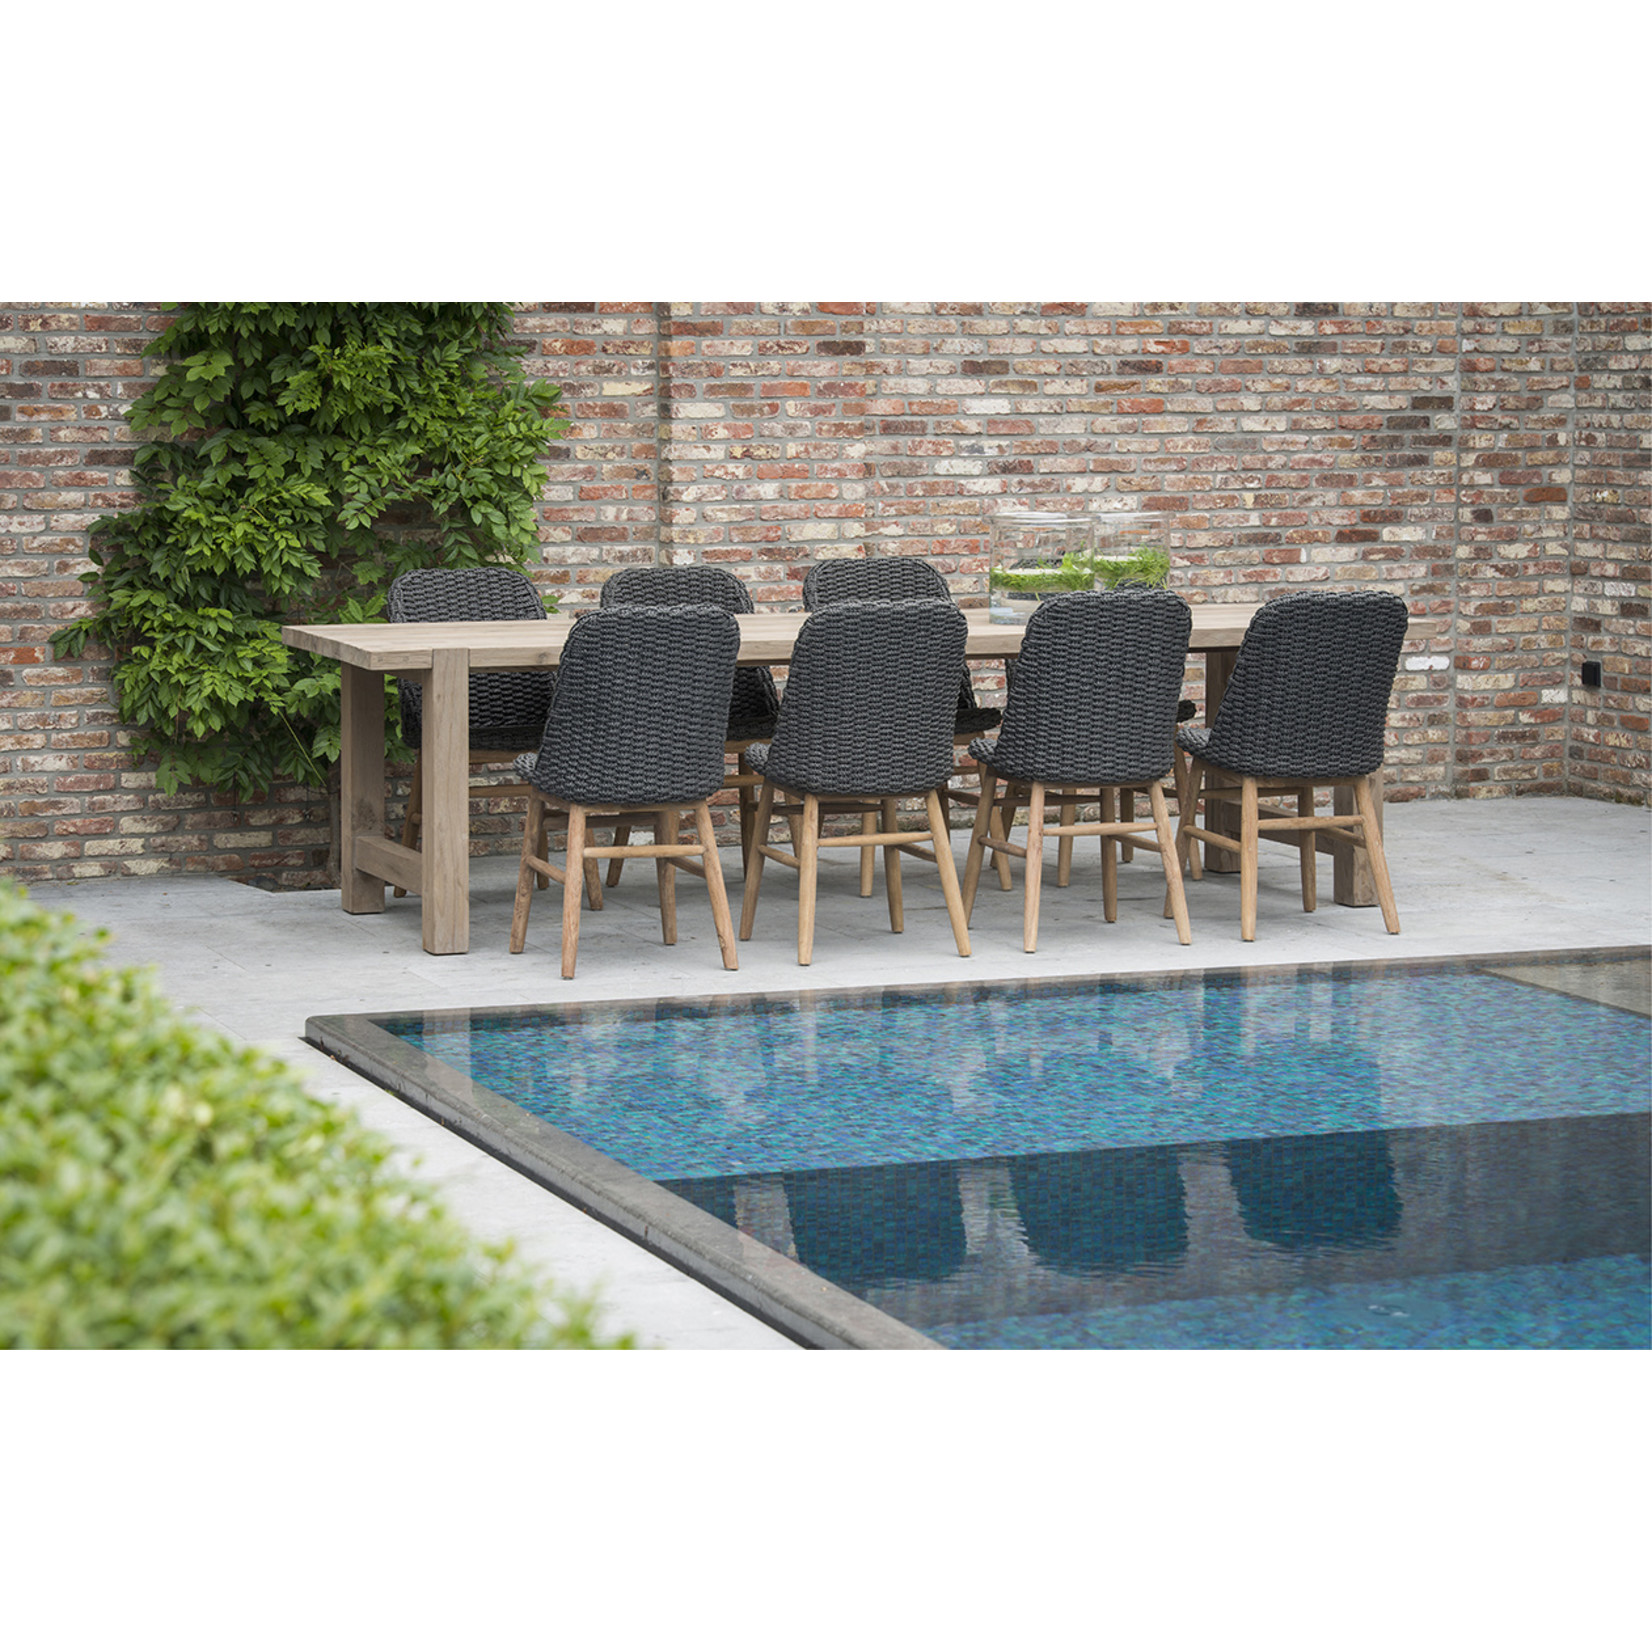 Gommaire Chair Sienna | Reclaimed Teak Natural Gray / PE Wicker Charcoal